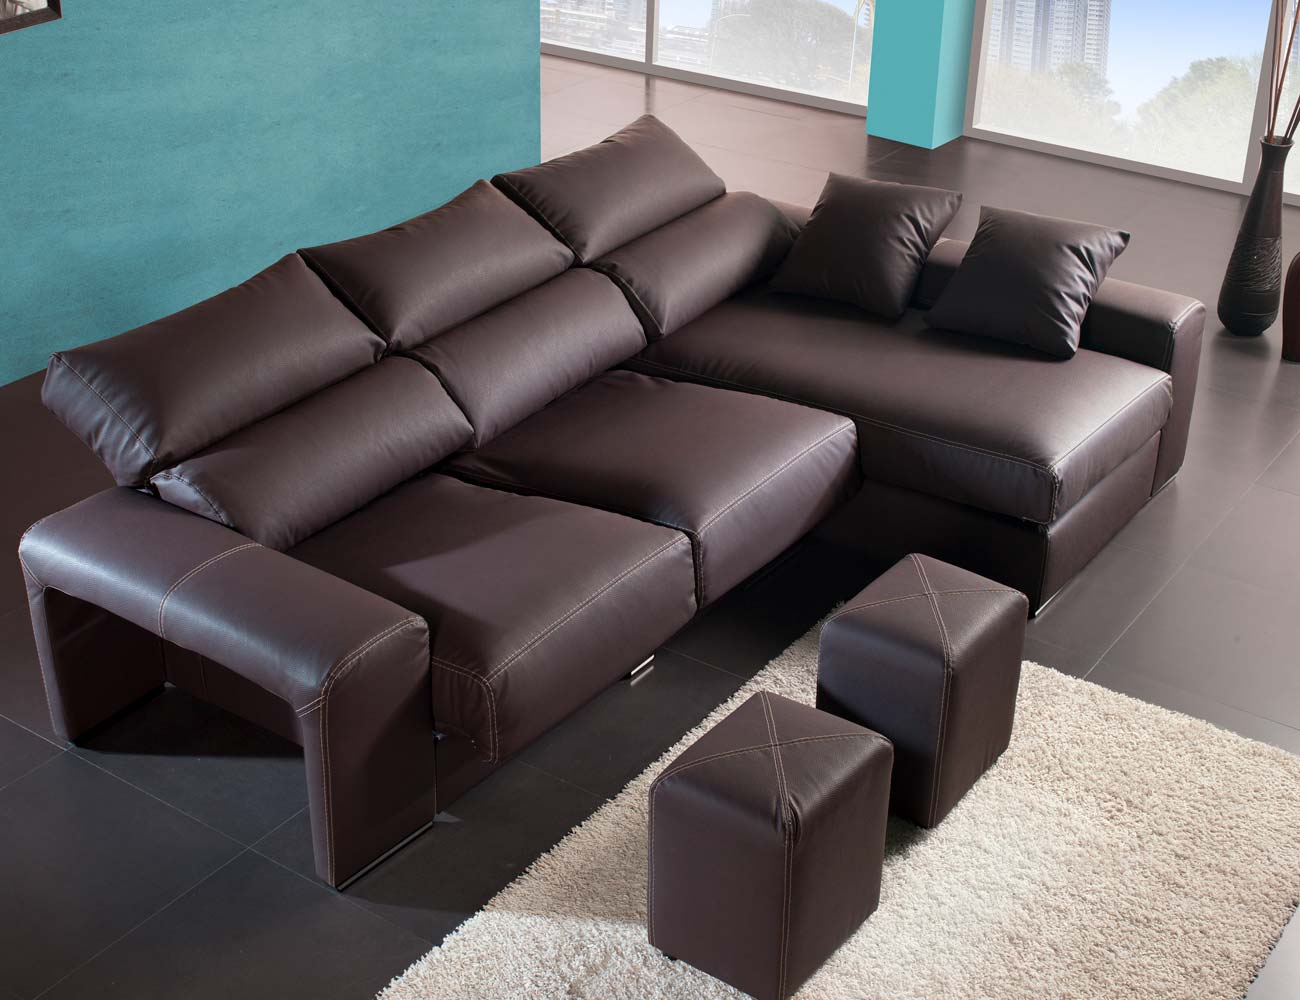 Sofa chaiselongue moderno polipiel chocolate poufs taburetes52